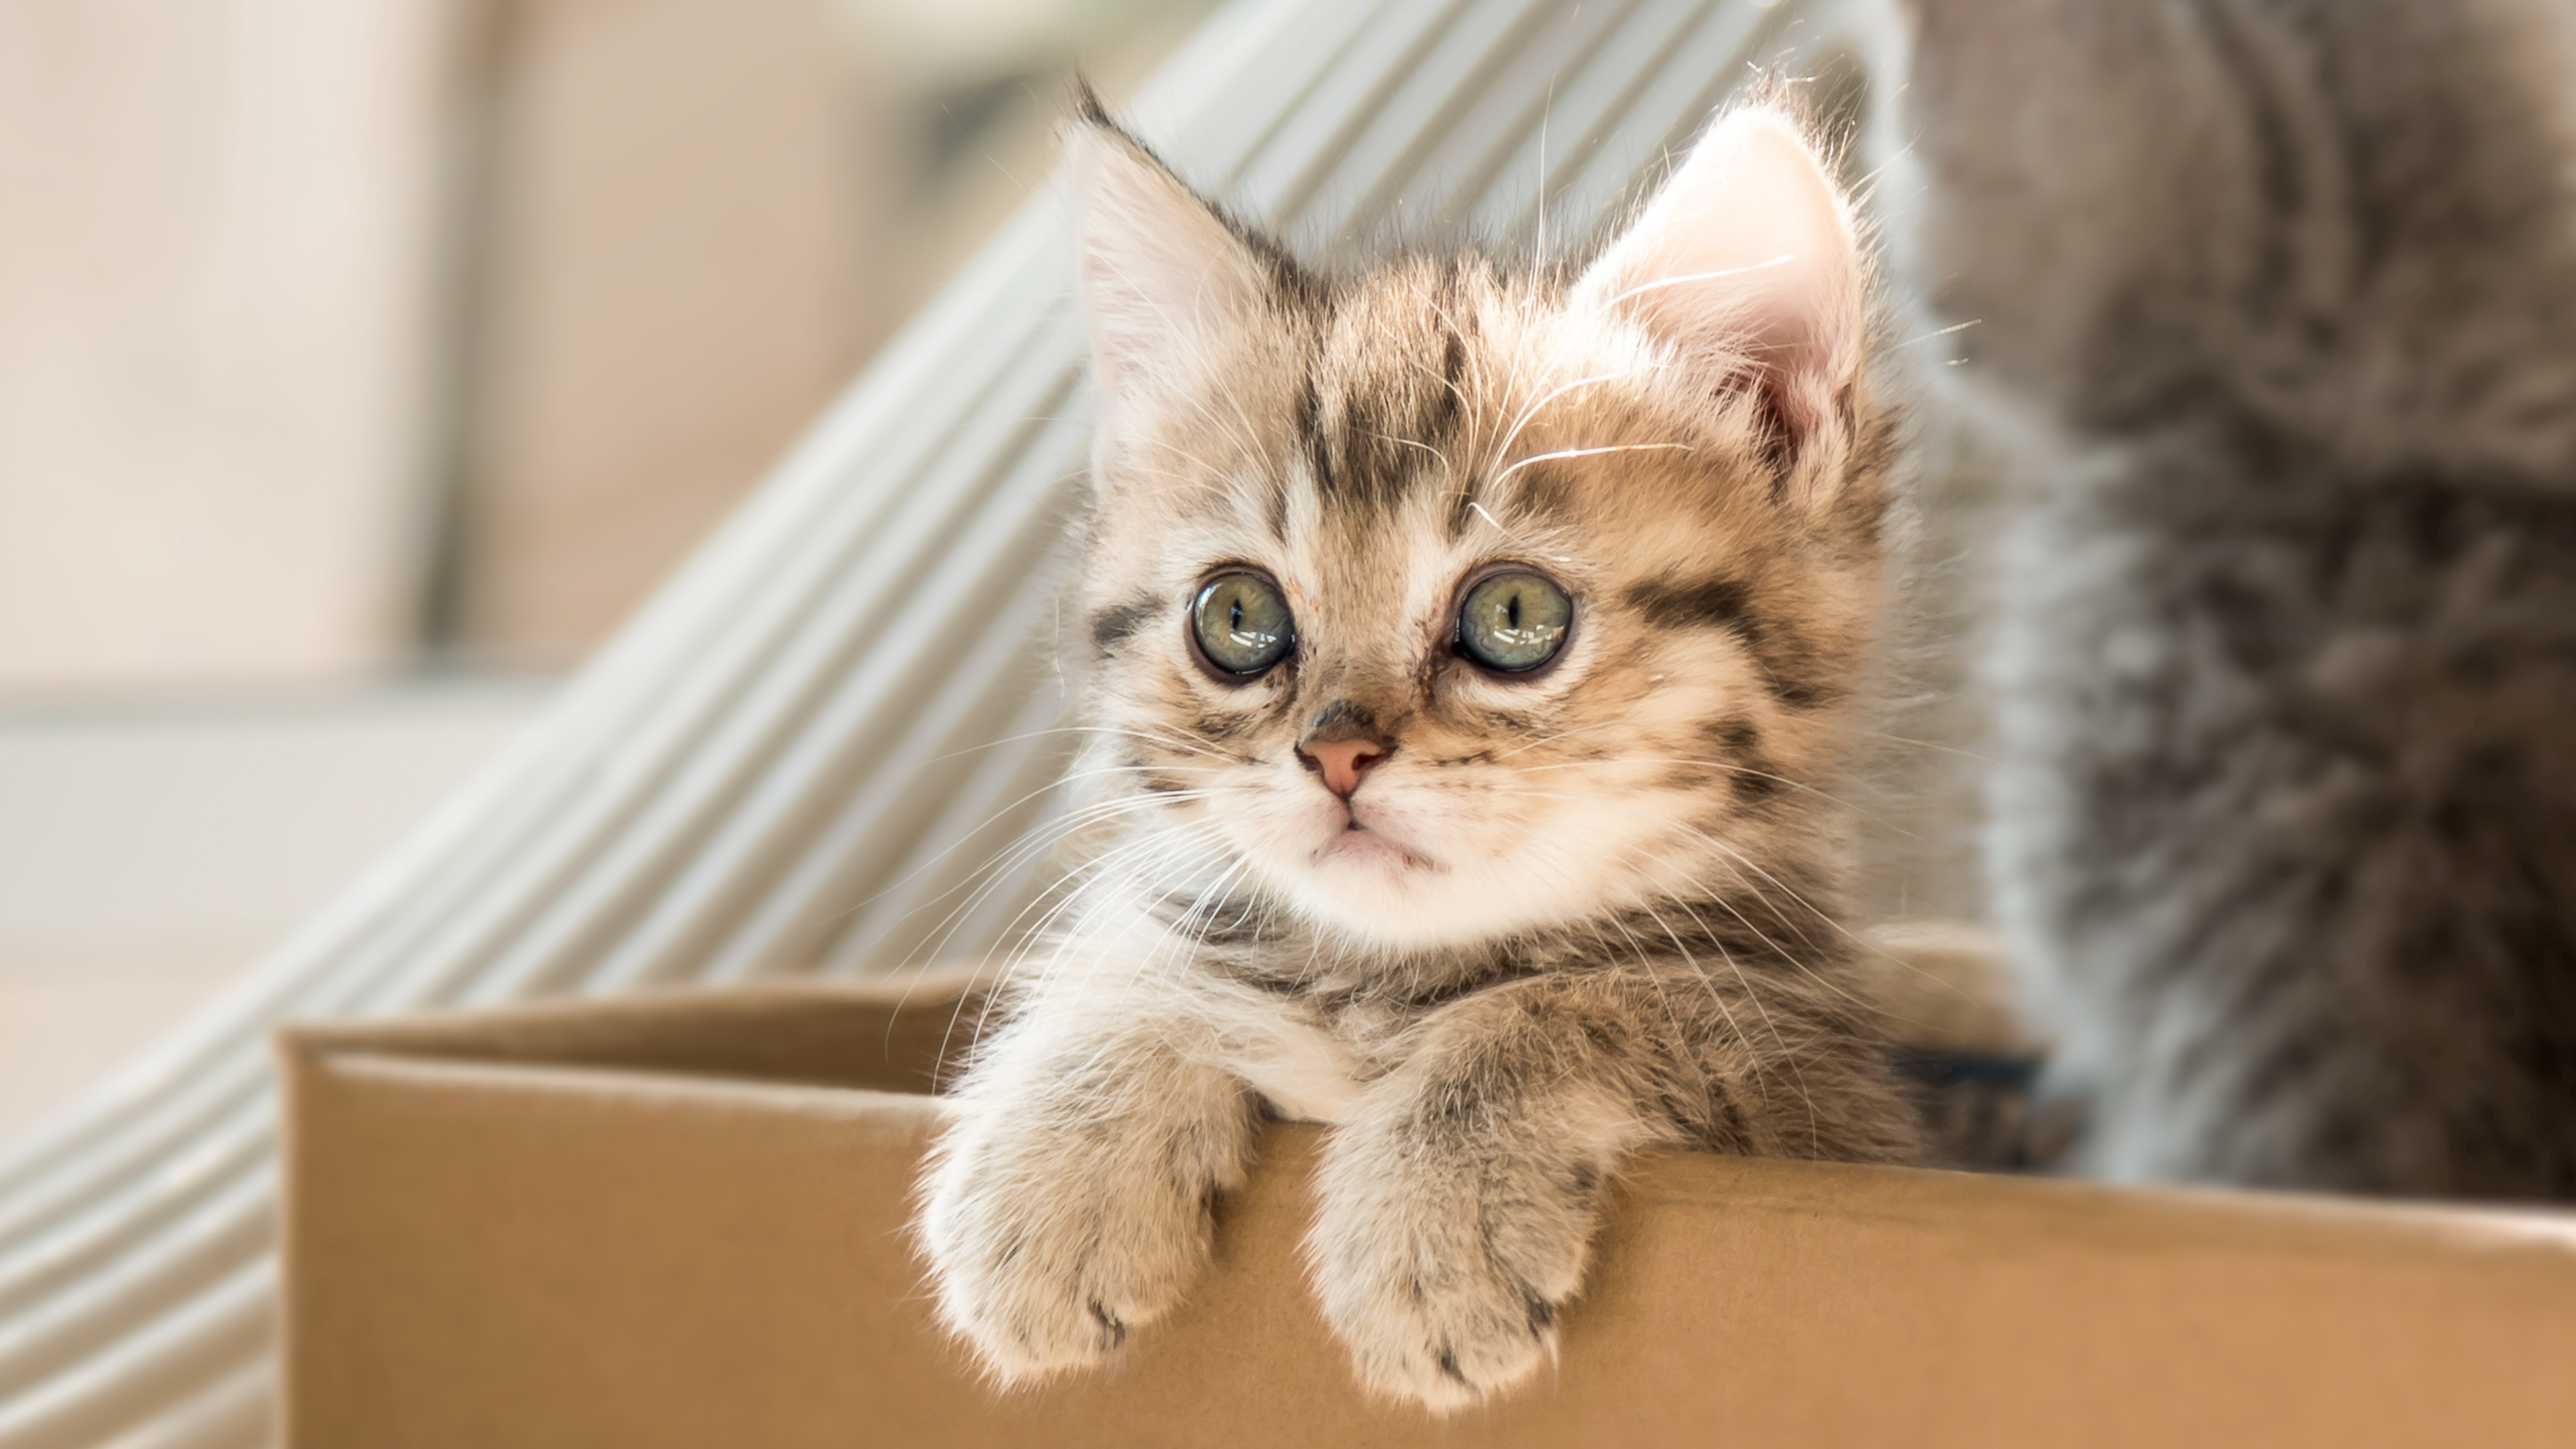 Two kittens sitting in a cardboard box